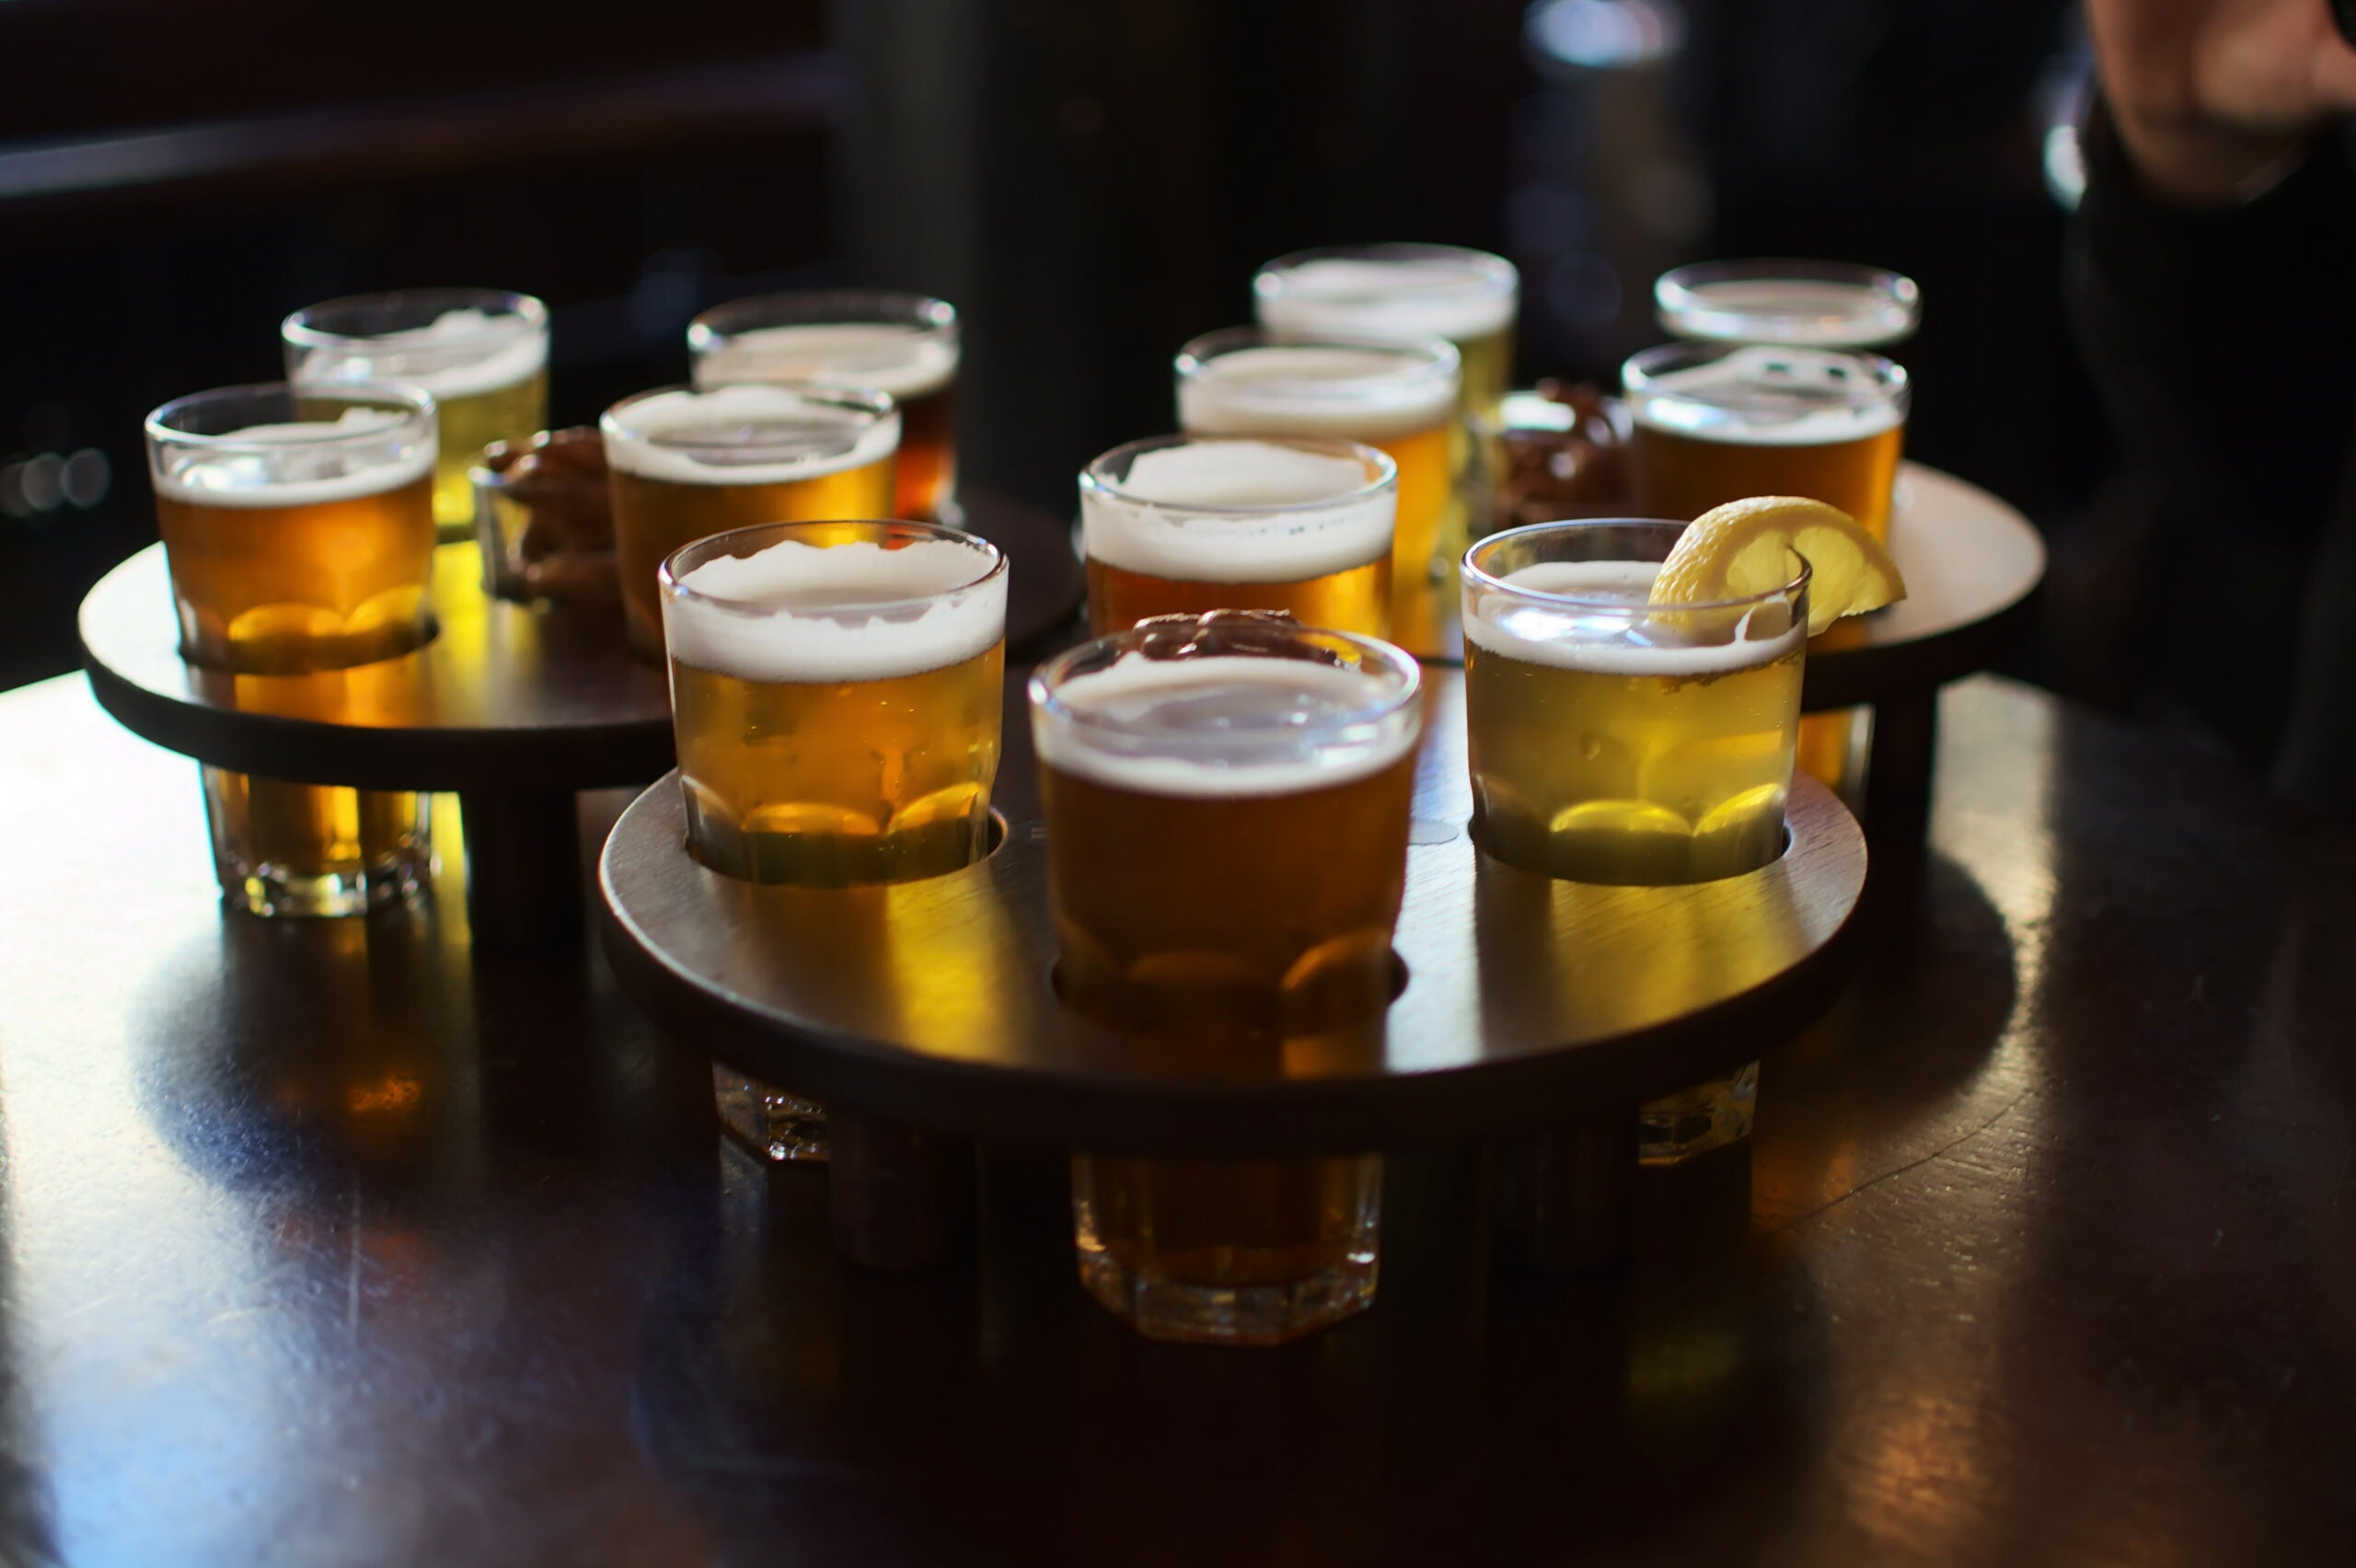 DNA Test Detects Beer Gone Bad